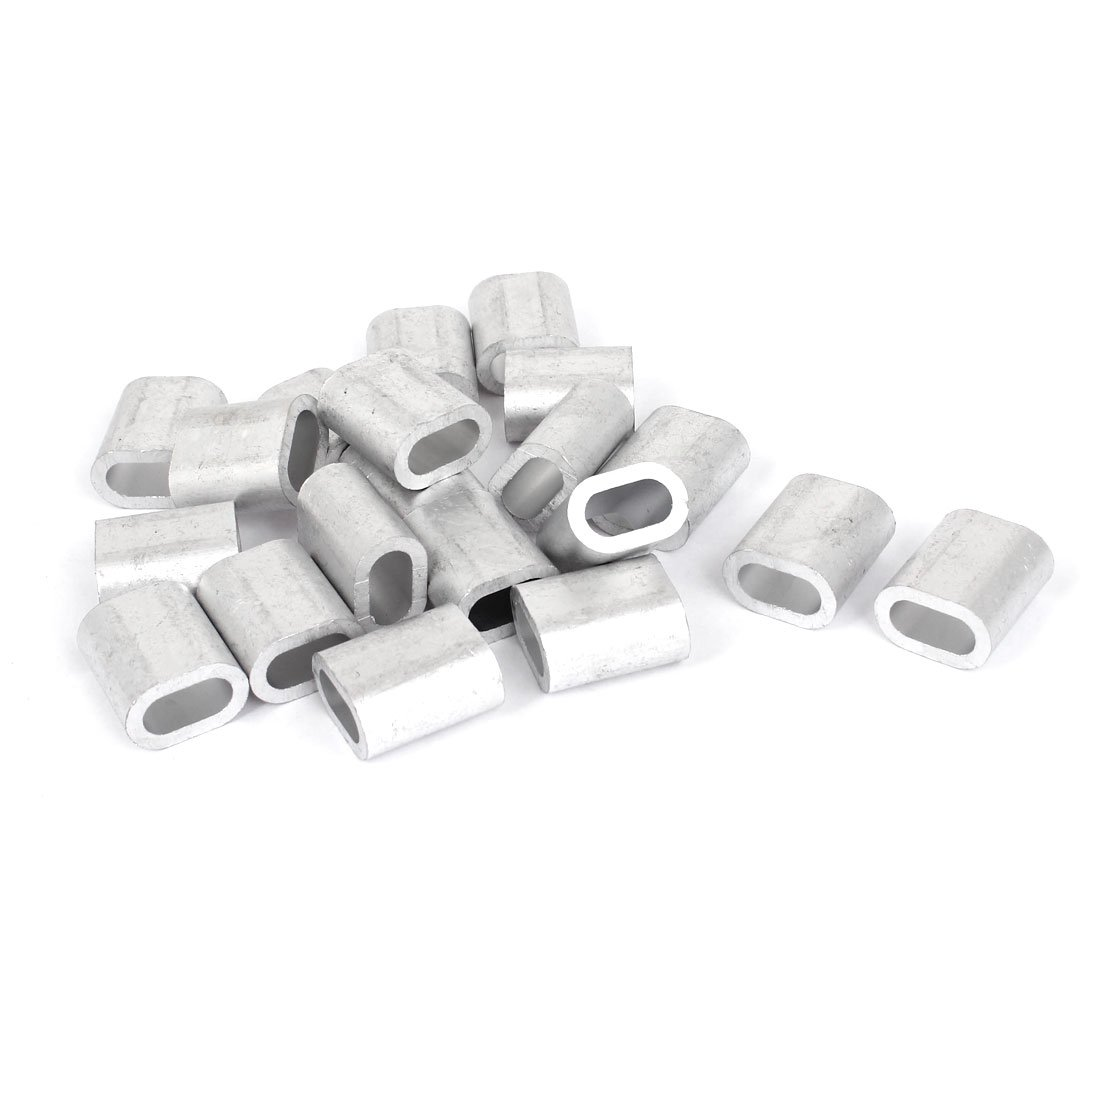 Uxcell a15060500ux0048 5/16-inchWire Rope Aluminum Sleeves Clip Fitting Cable Crimps 20pcs (Pack of 20)